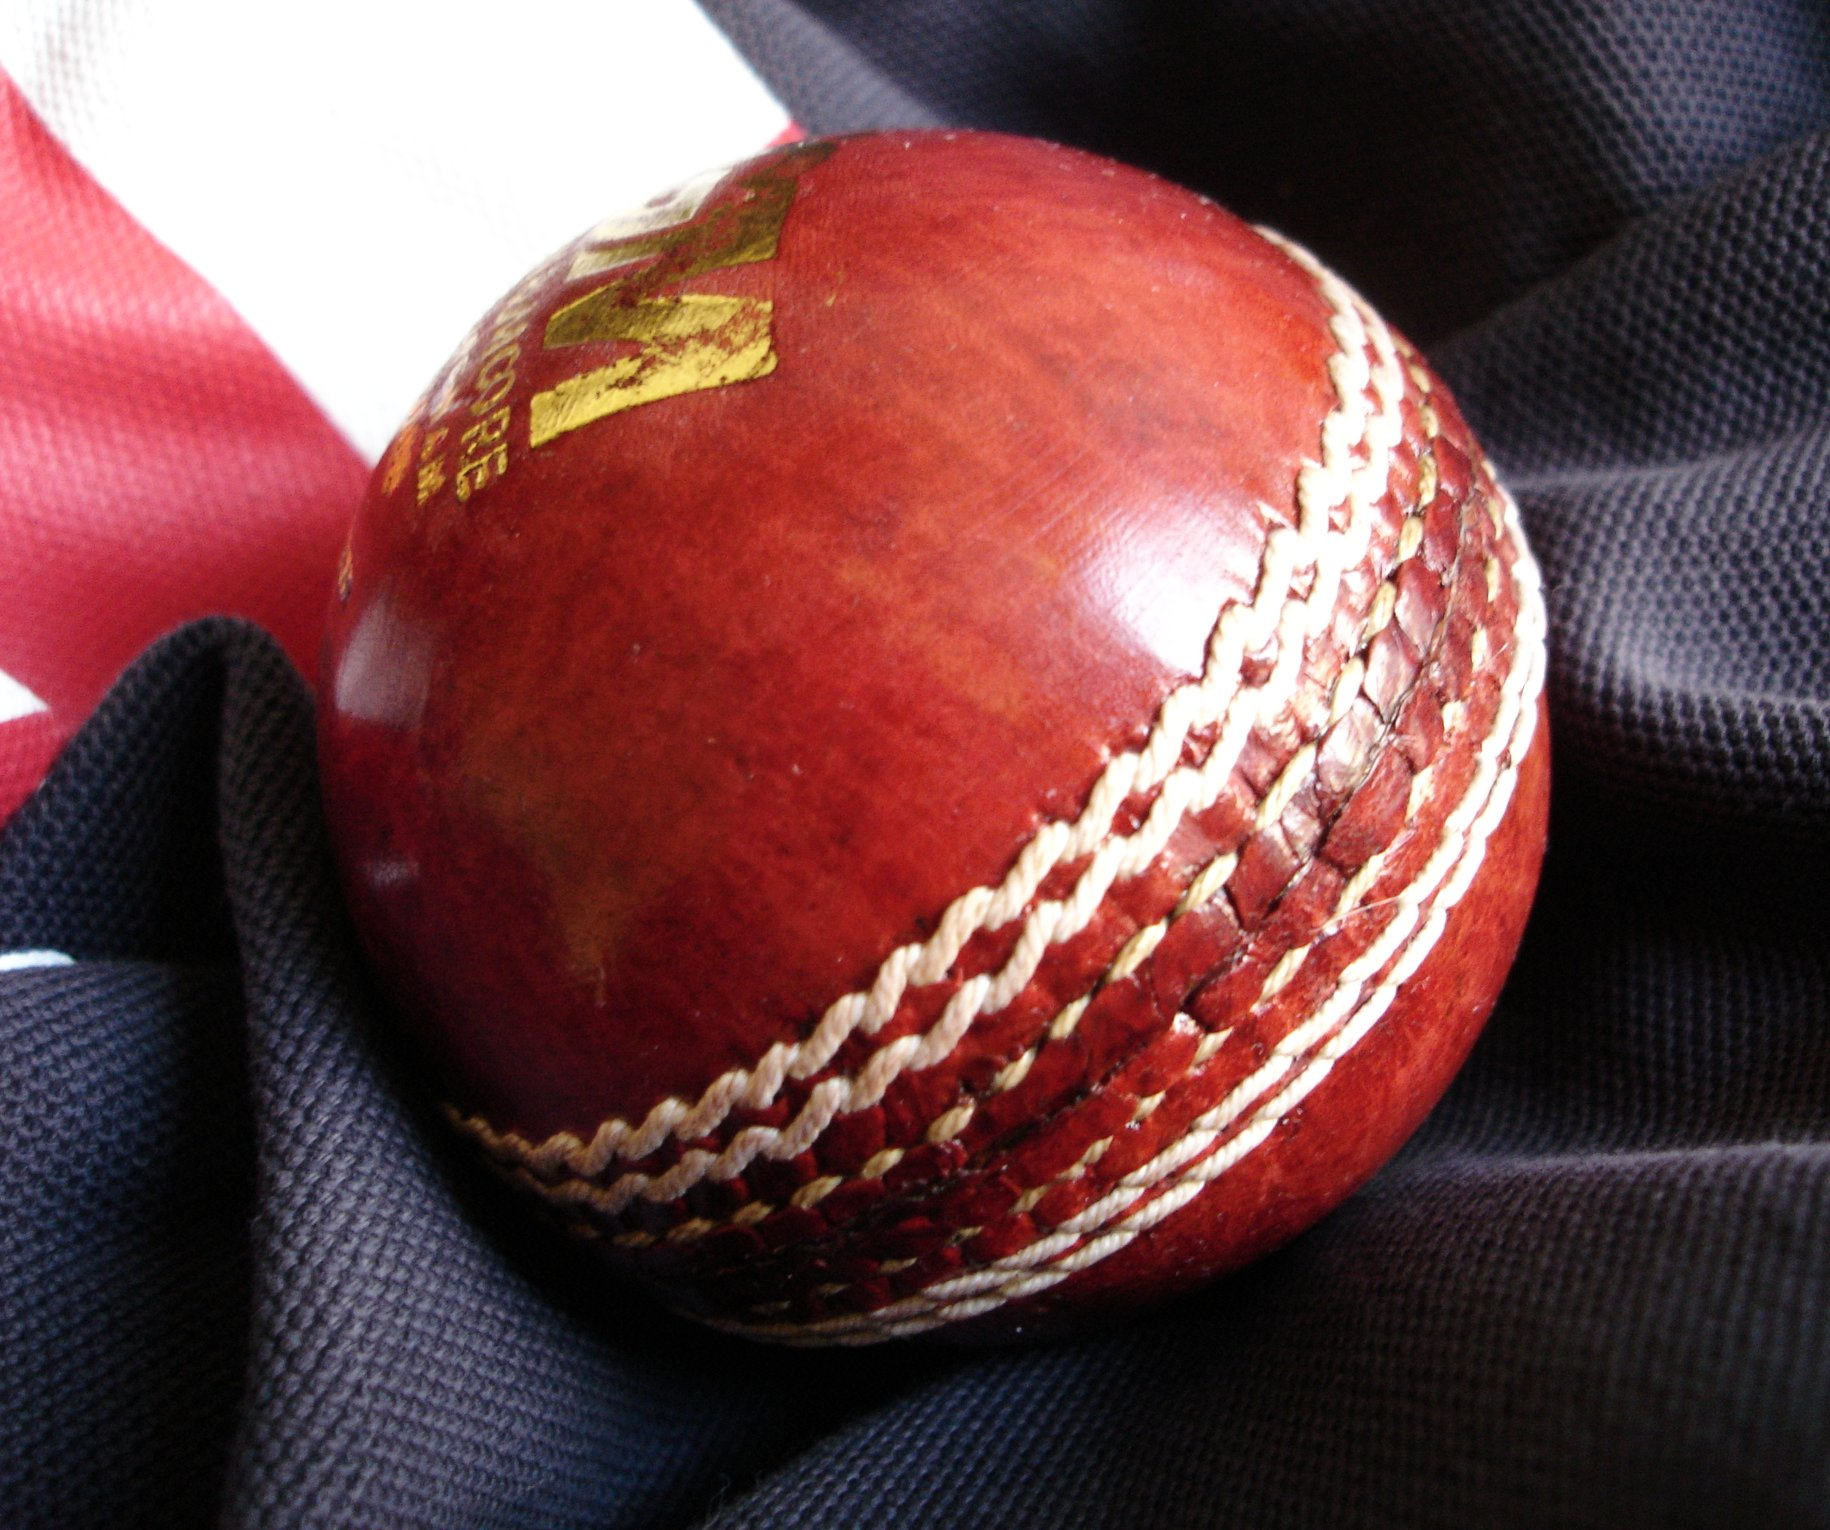 Ball Tampering Wikipedia